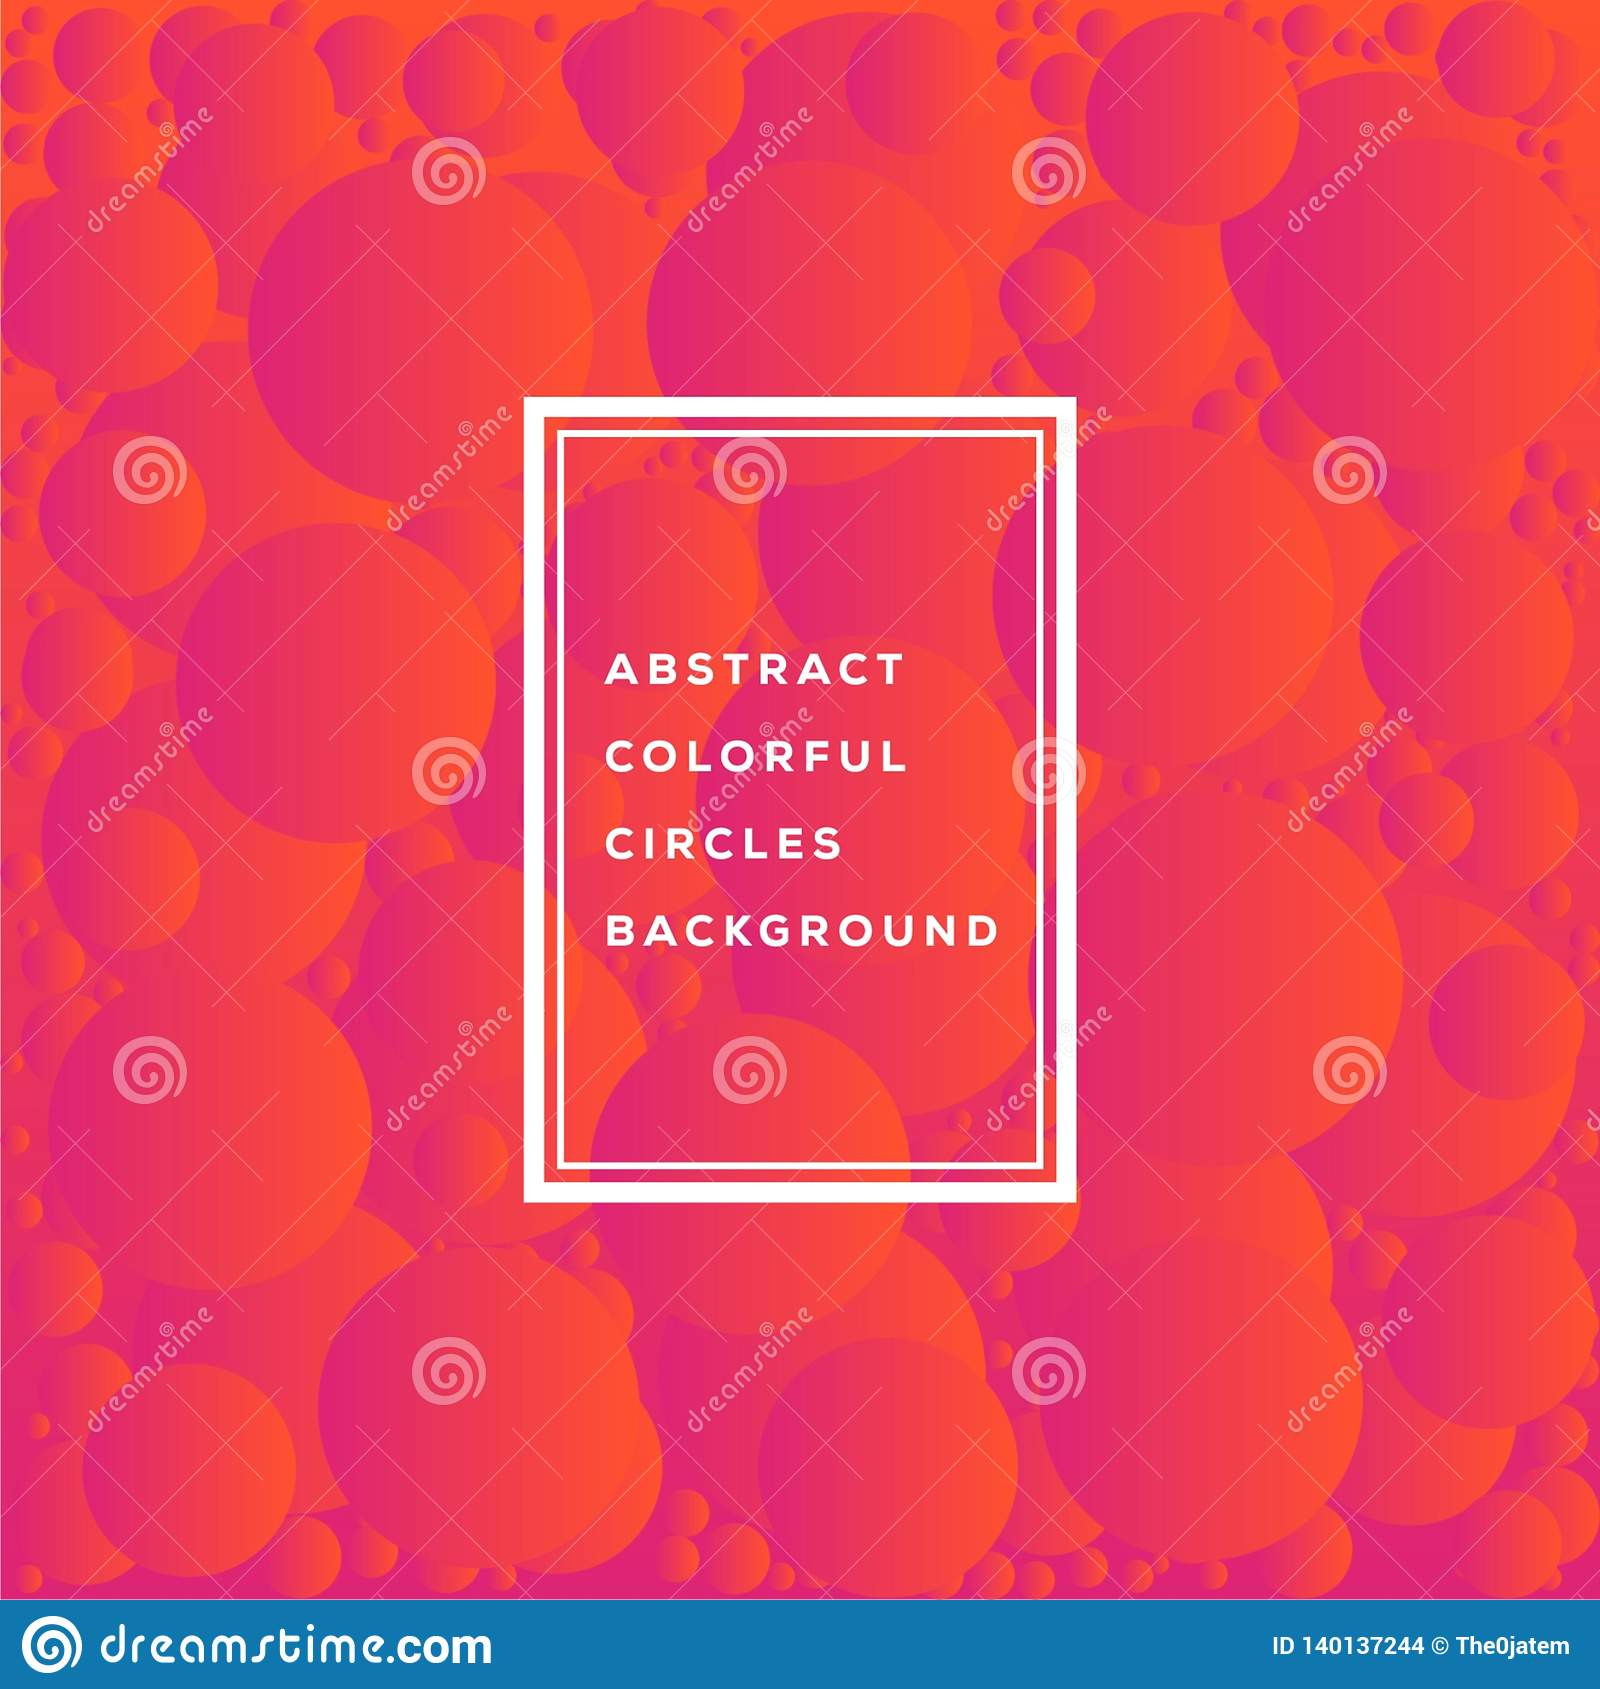 Vector illustration of abstract colorful circles template design for background. Glowing bubbles circle with gradient on white.